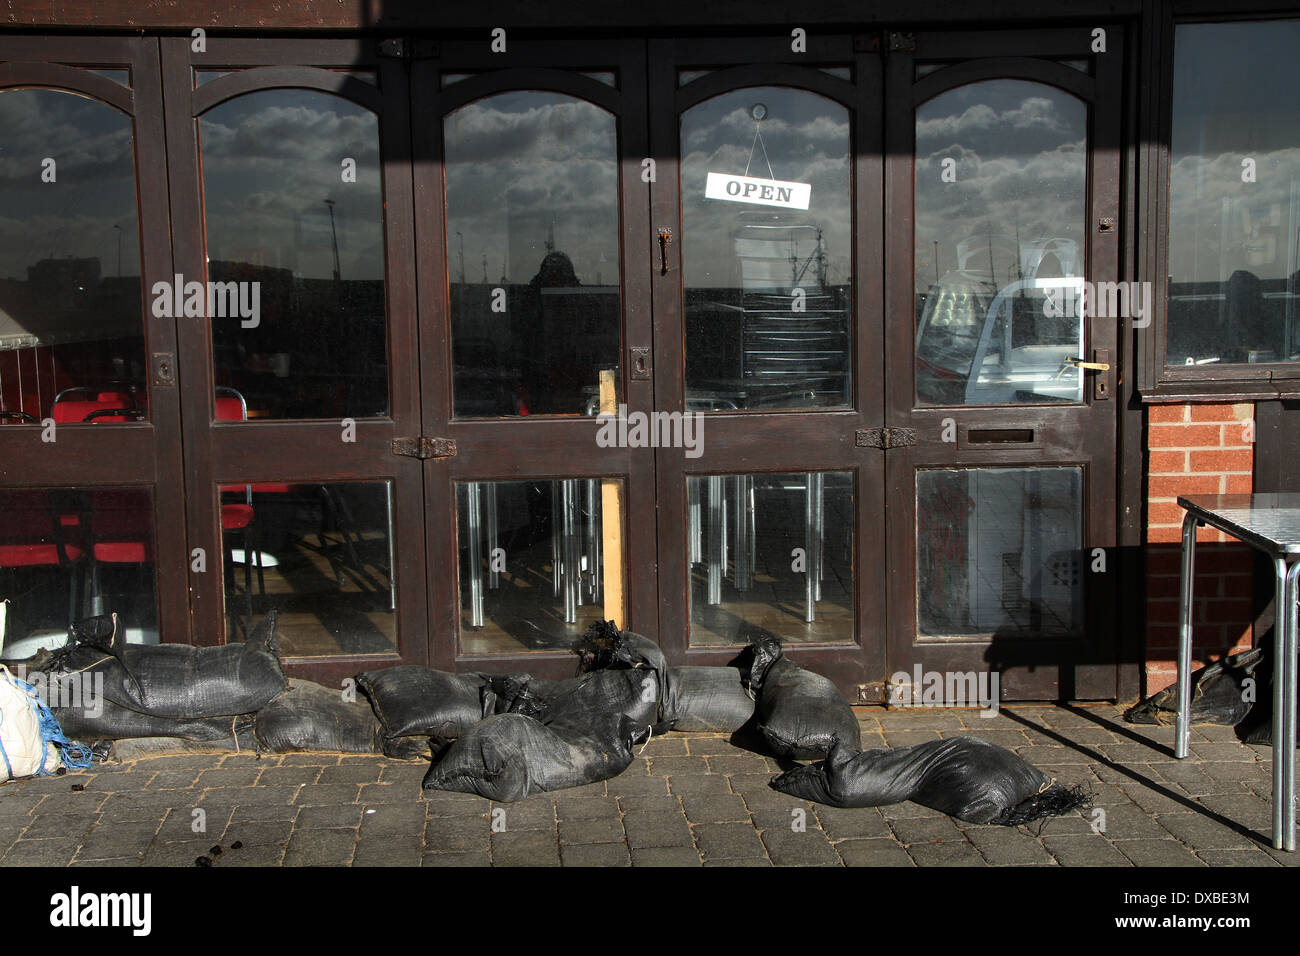 sand bags in front of flooded business stock photo 67864712 alamy